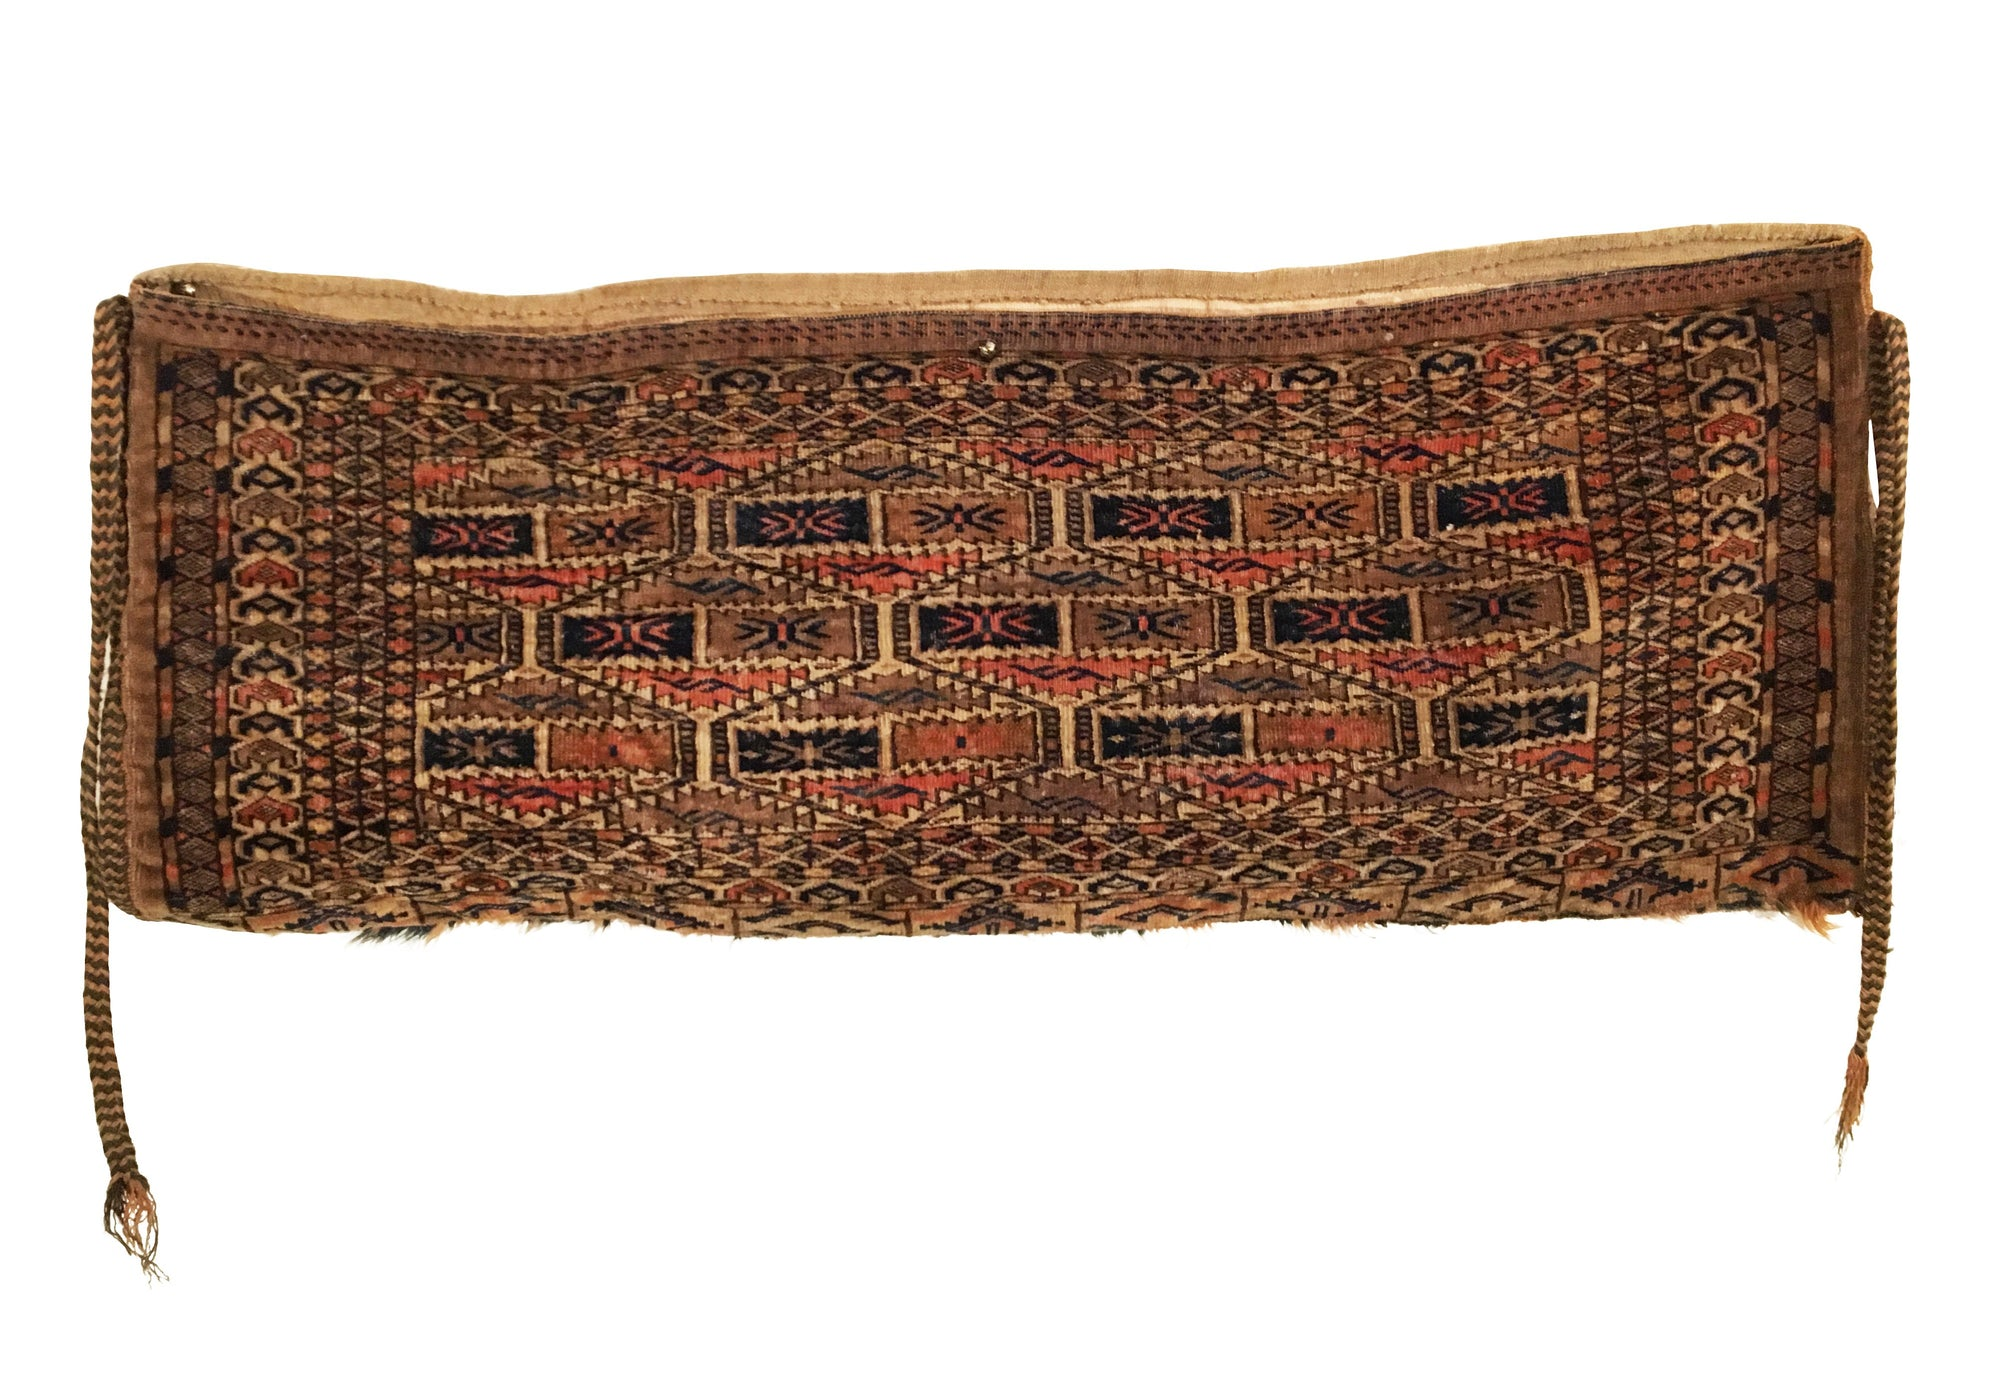 Antique Turkmen Yomud Torba Bag 1'1 x 2'10